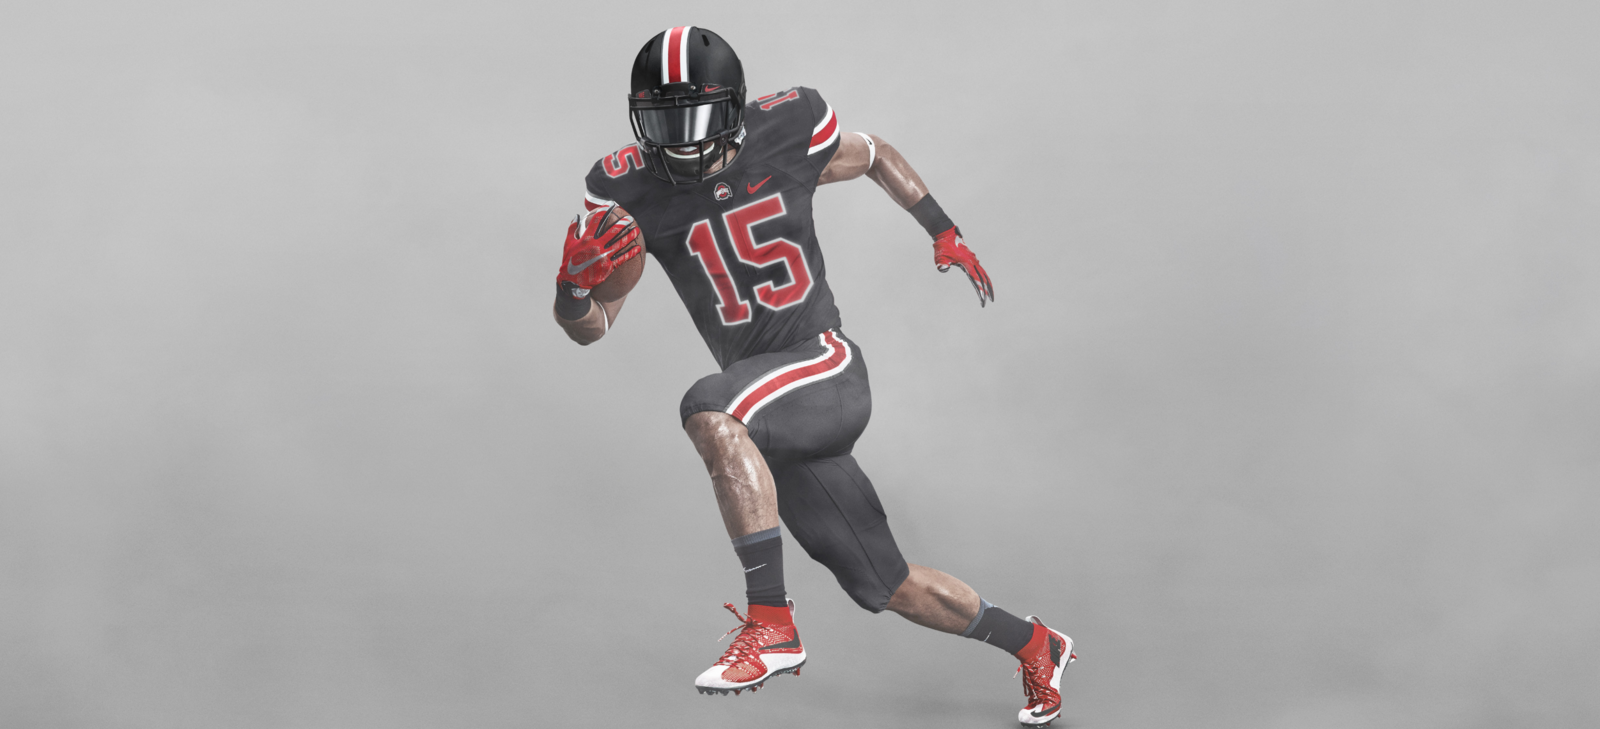 new product 2194a e6142 Ohio State Goes Dark For Night Game - Nike News